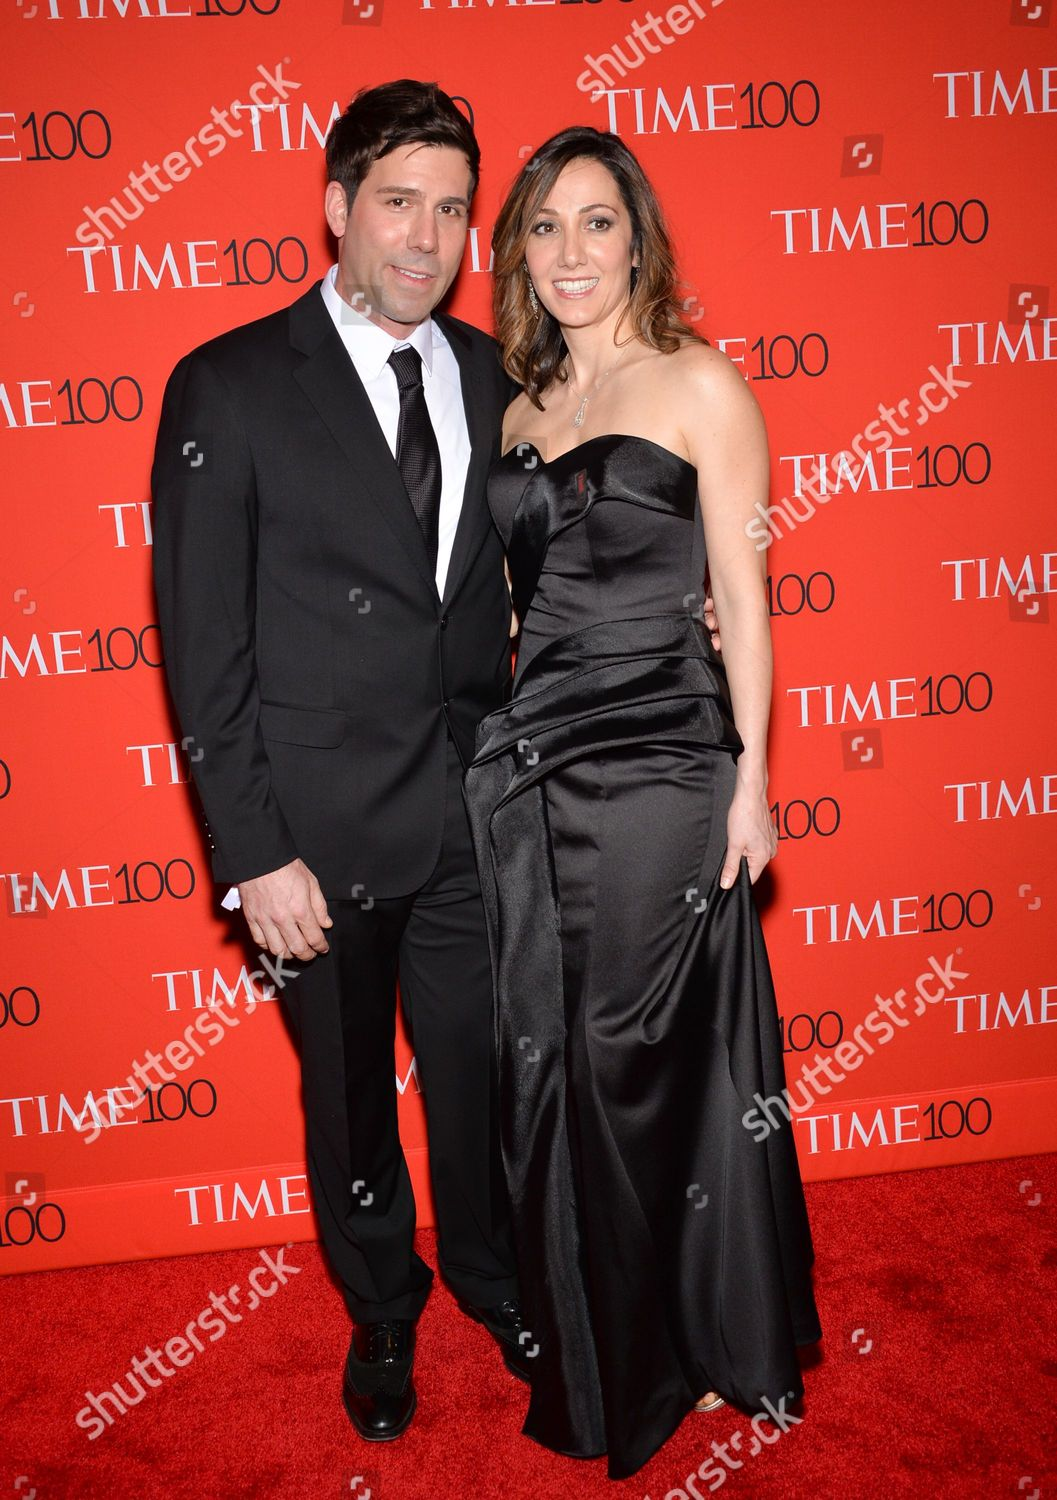 Stock photo of 2015 TIME 100 Gala - Arrivals, New York, USA